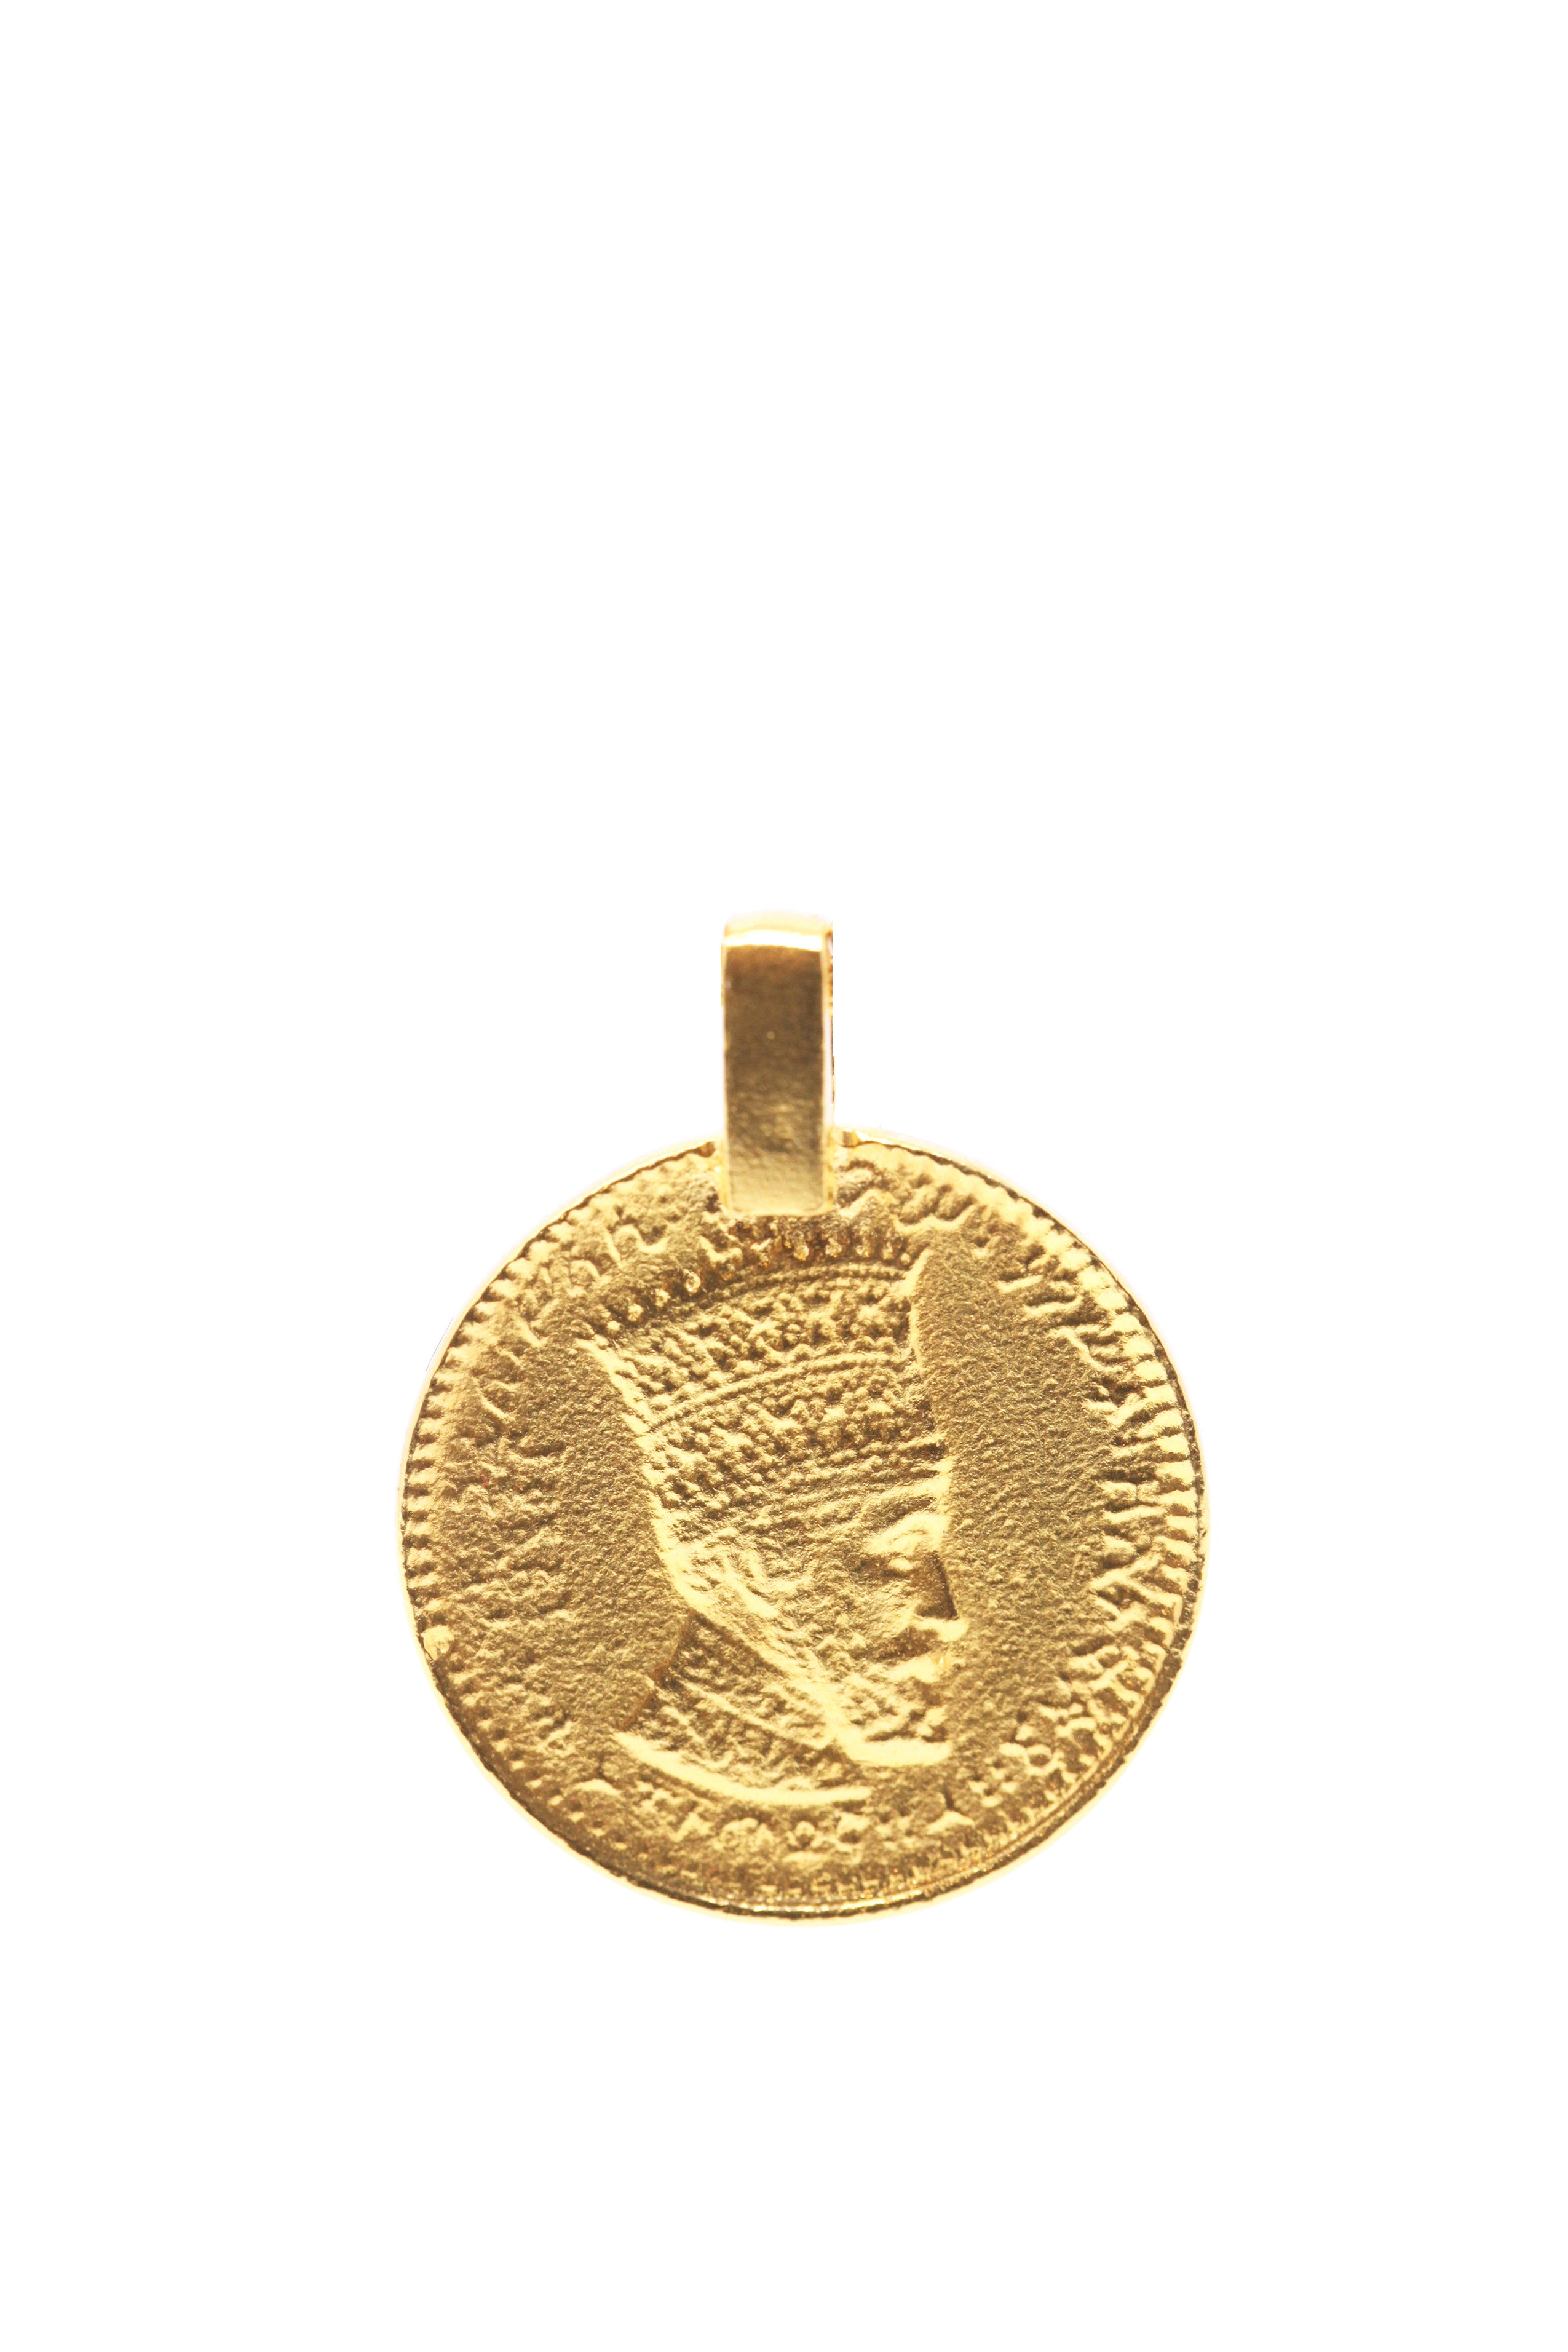 THE RAS TAFARI Coin Pendant